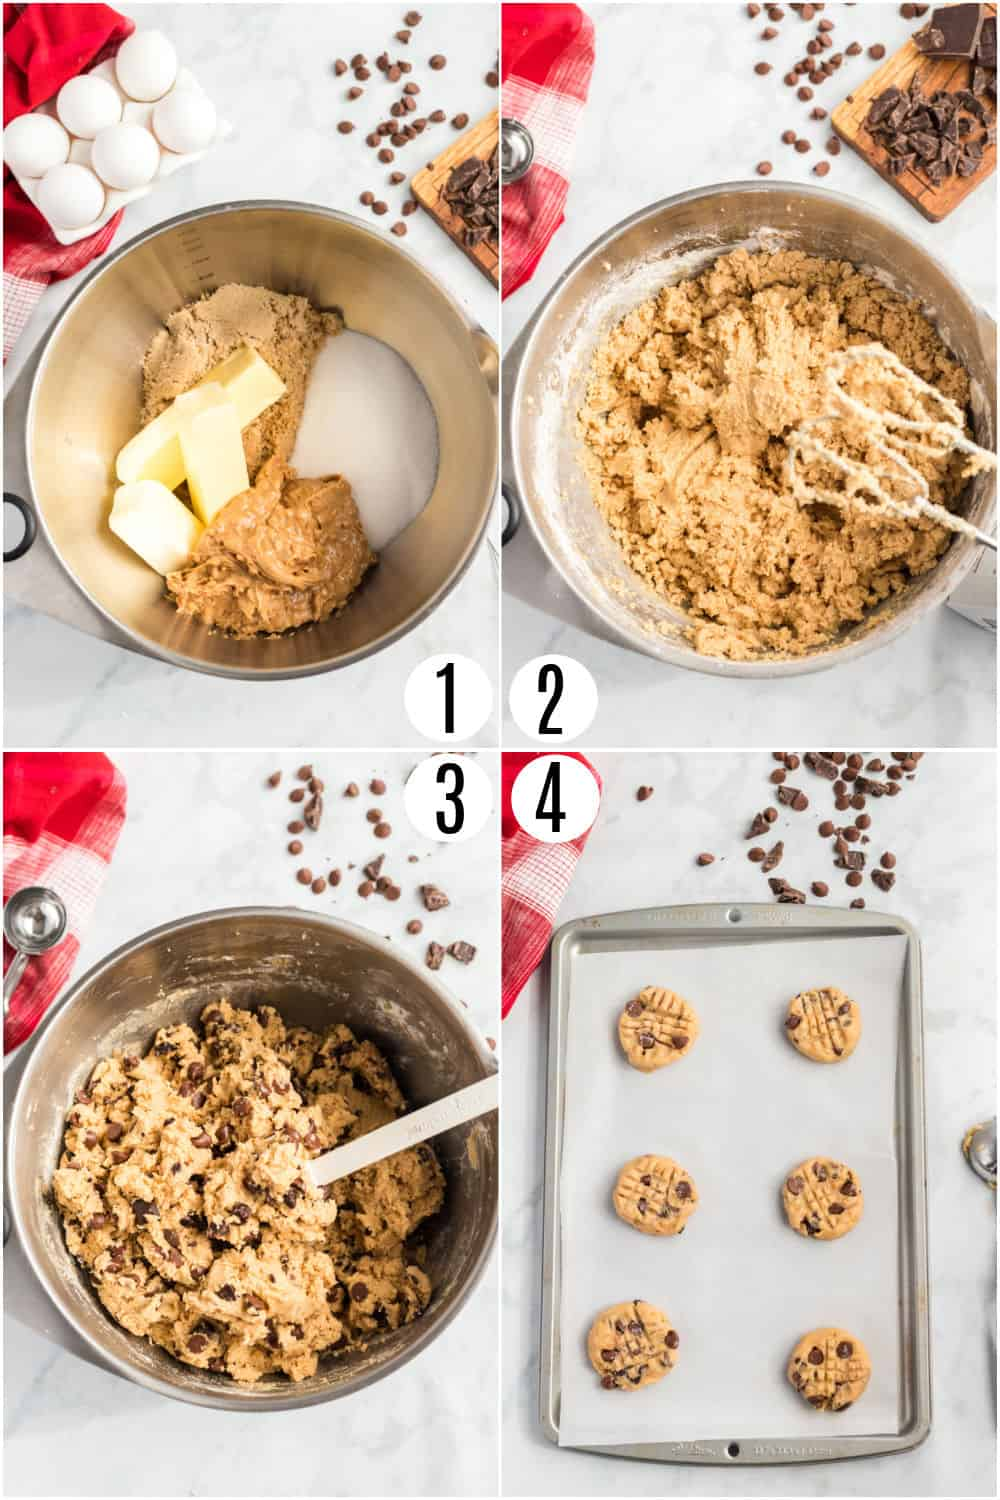 Step by step photos showing how to make peanut butter chocolate chip cookies.